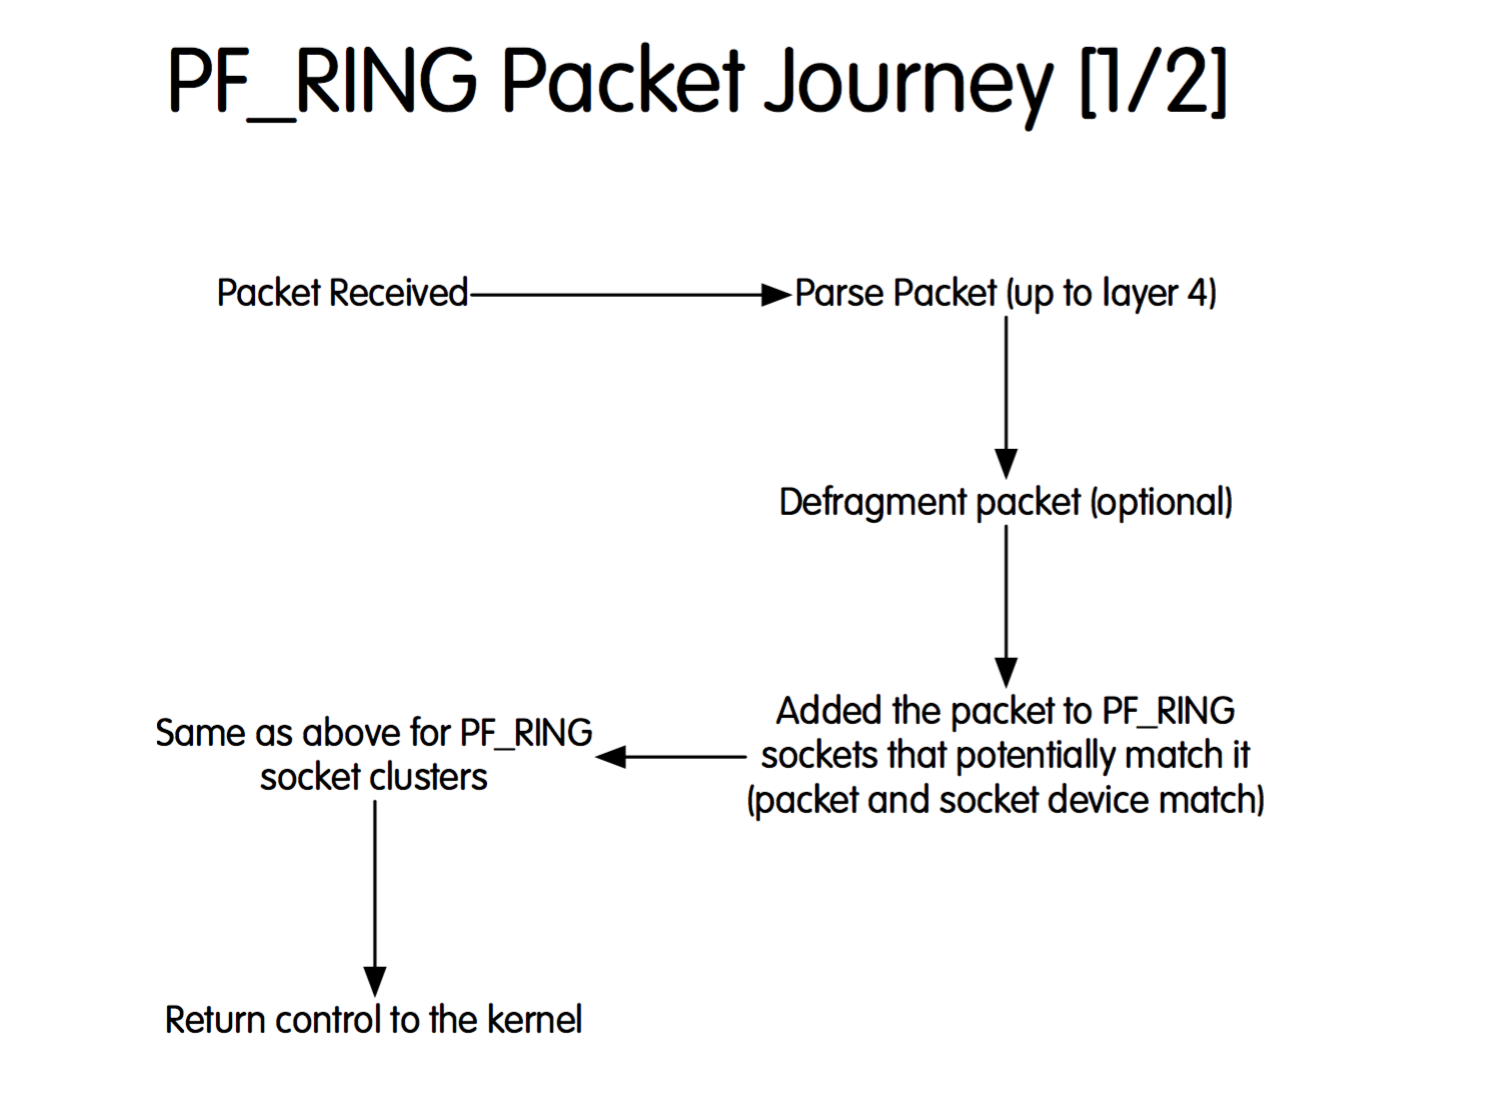 PF_RING Packet Journey - 1